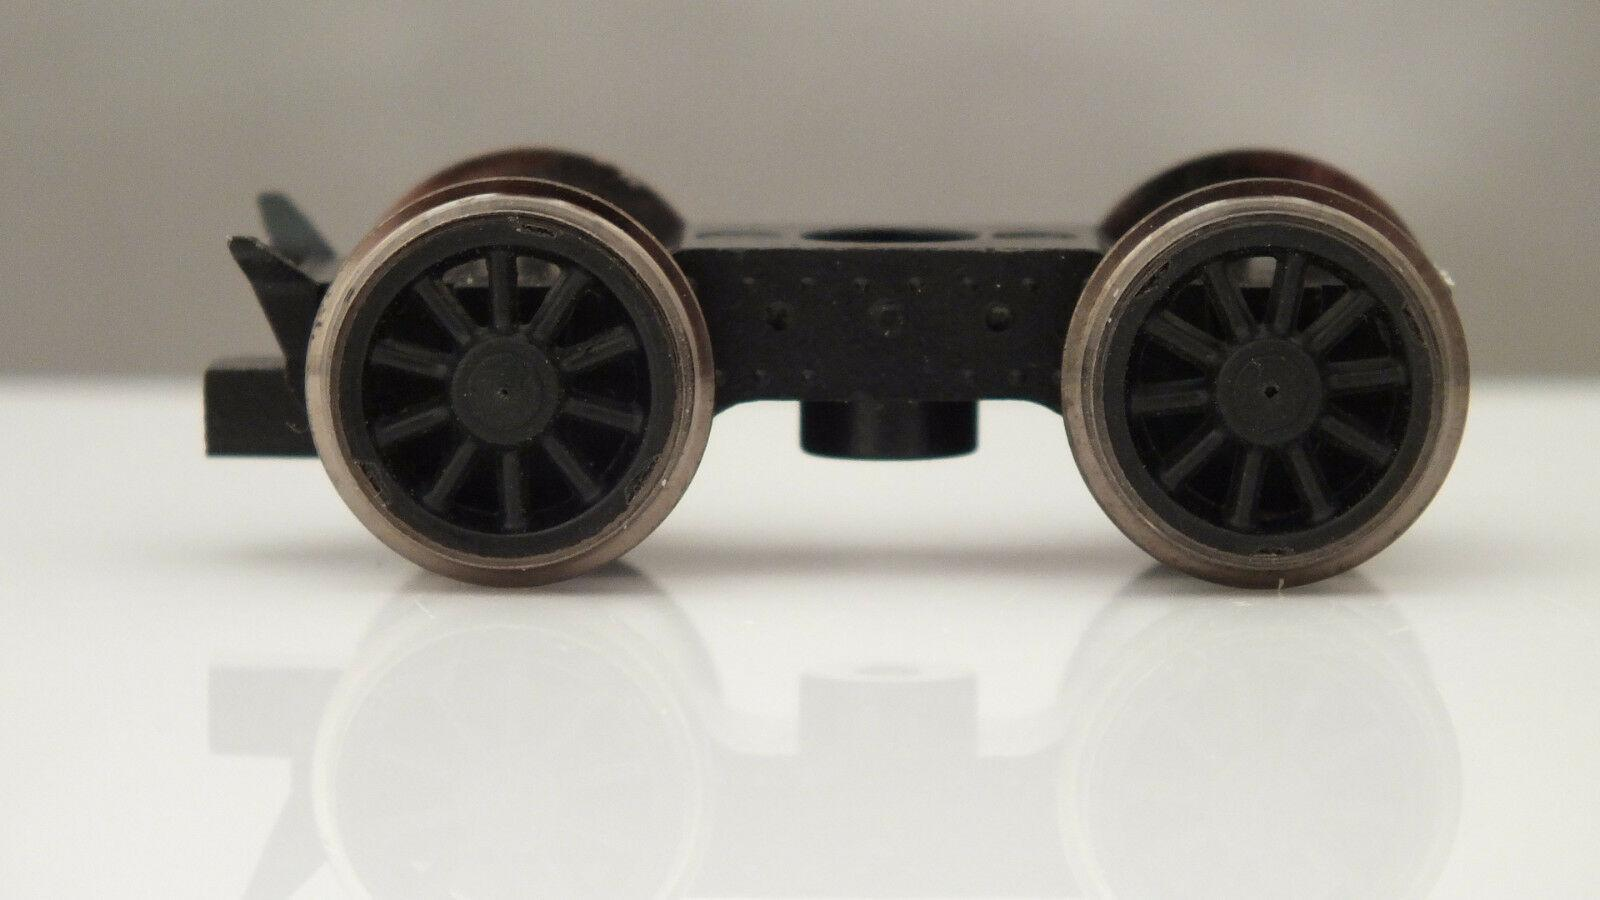 X6337 HORNBY FRONT BOGIE ASSEMBLY TORNADO BLACK WHEELS         X21A